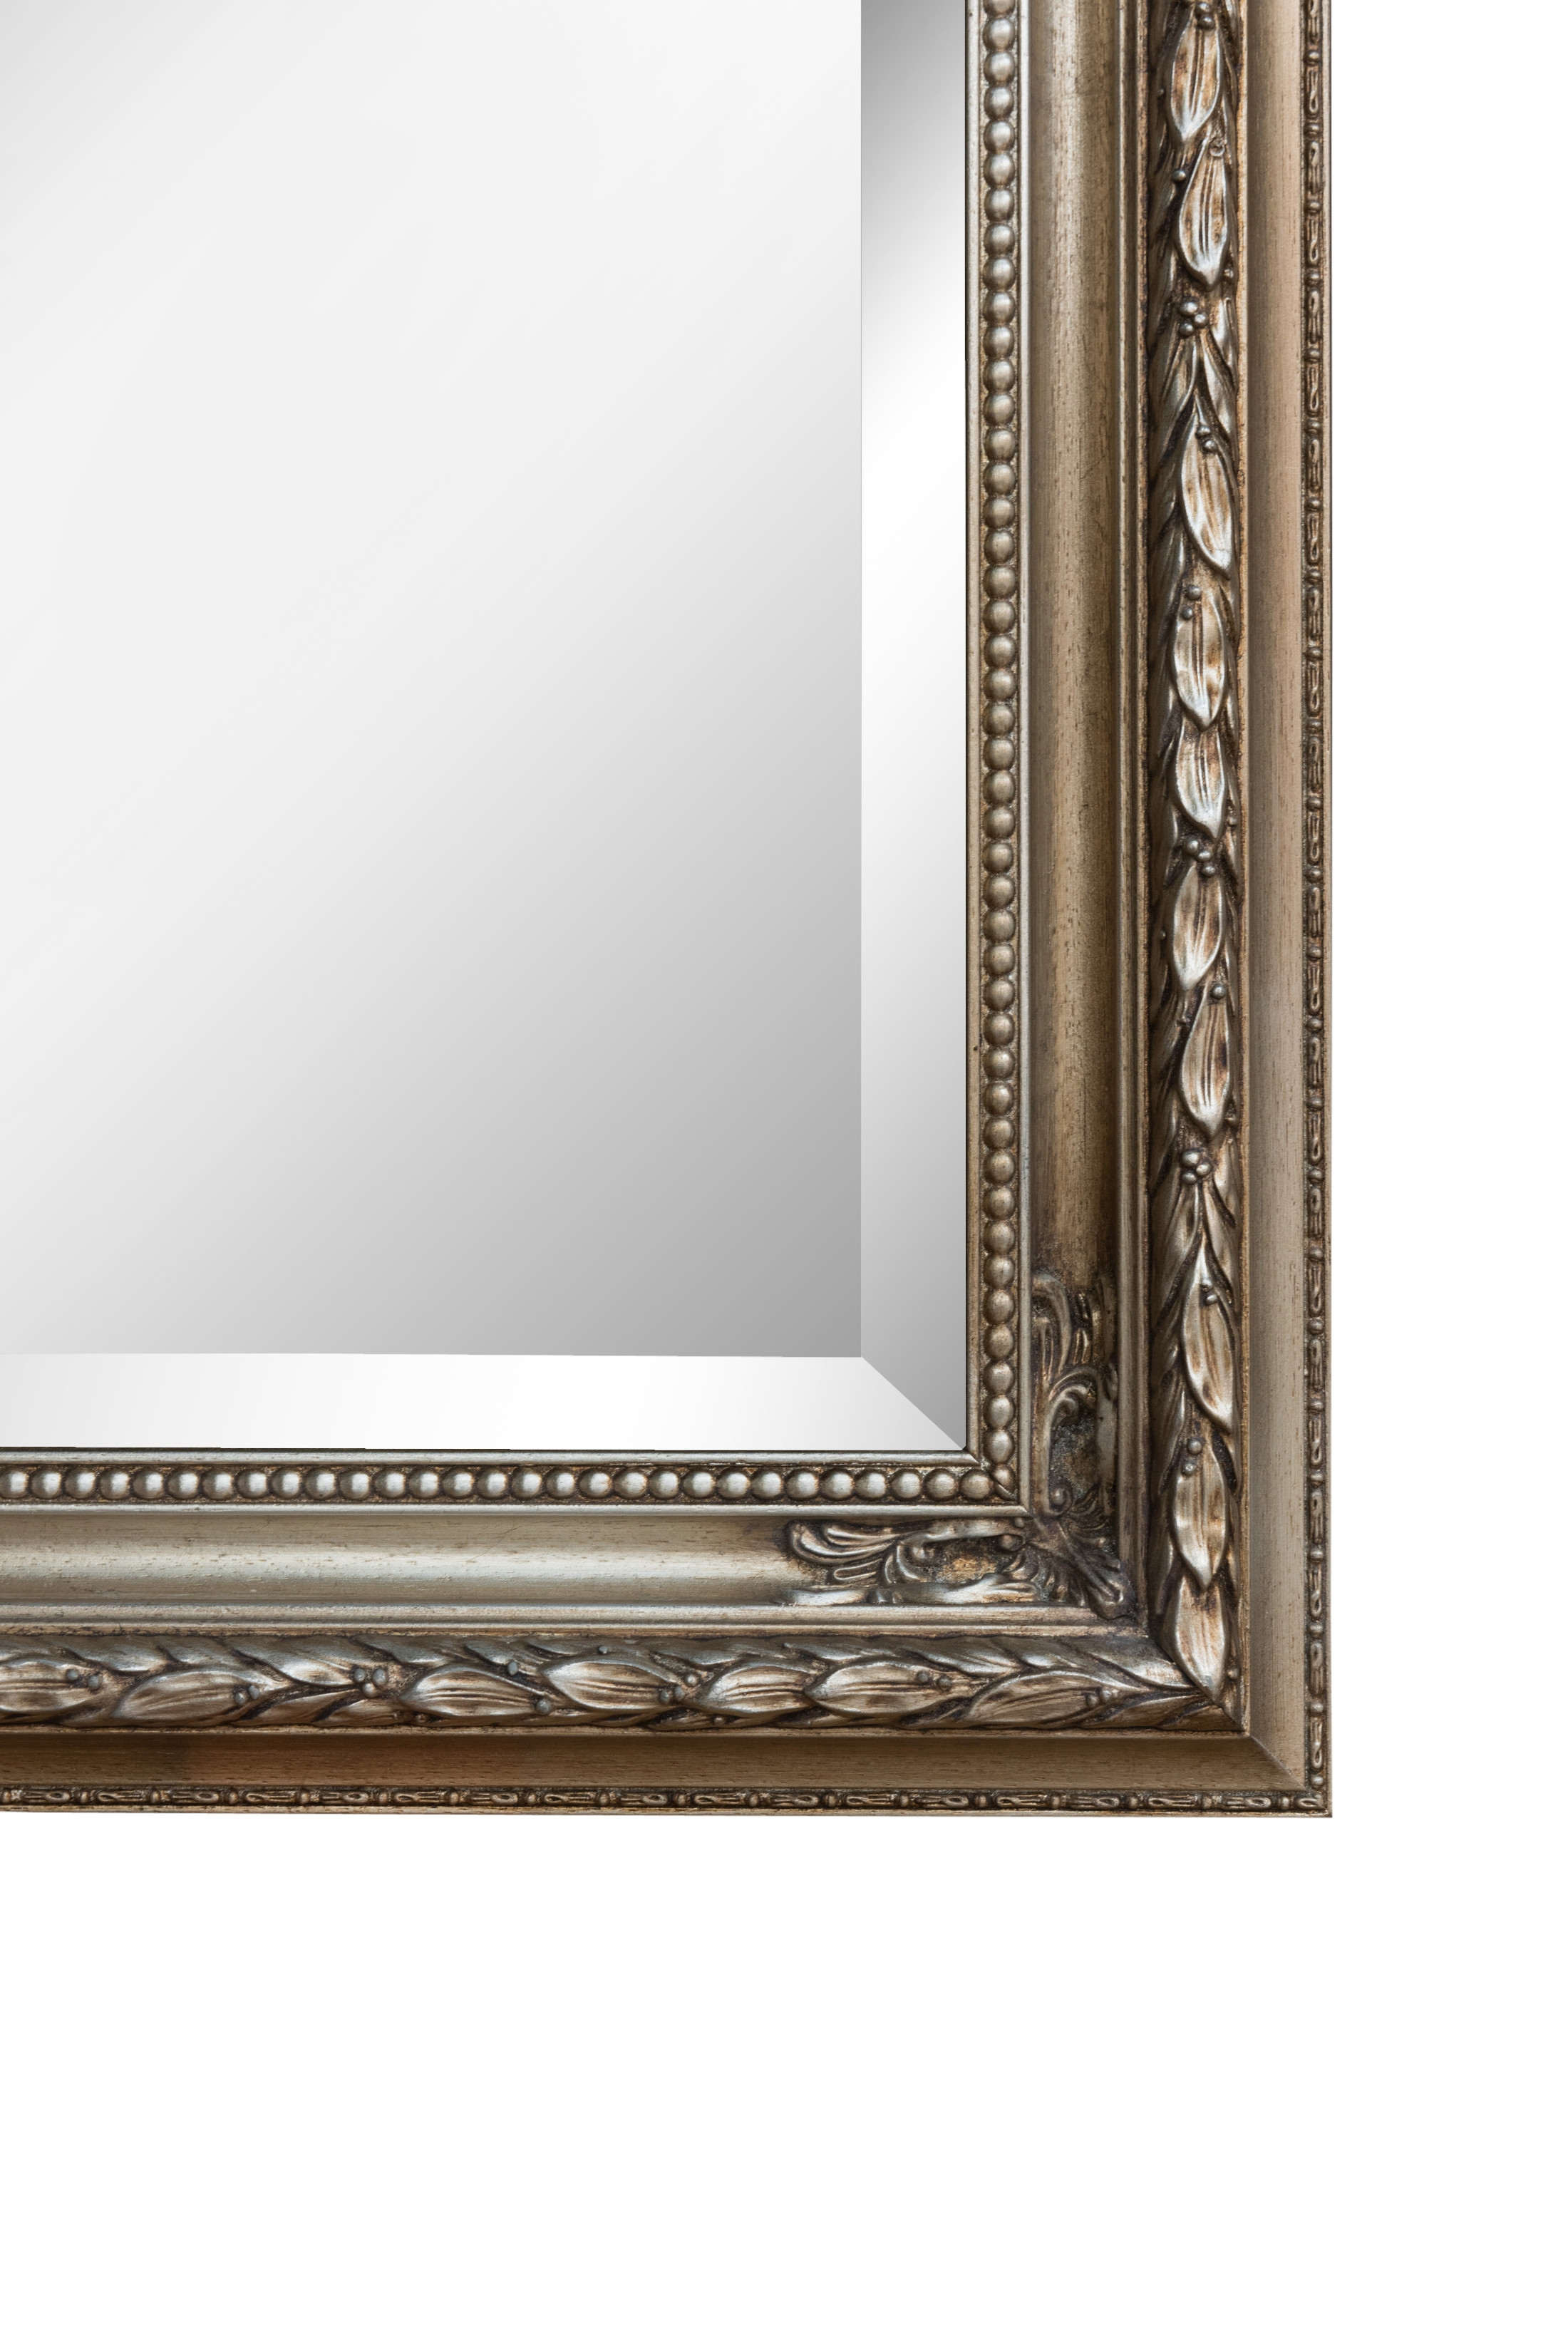 Silver Baroque Mirror Large Mirrors For Sale Panfili Mirrors Pertaining To Baroque Mirrors (Image 13 of 15)